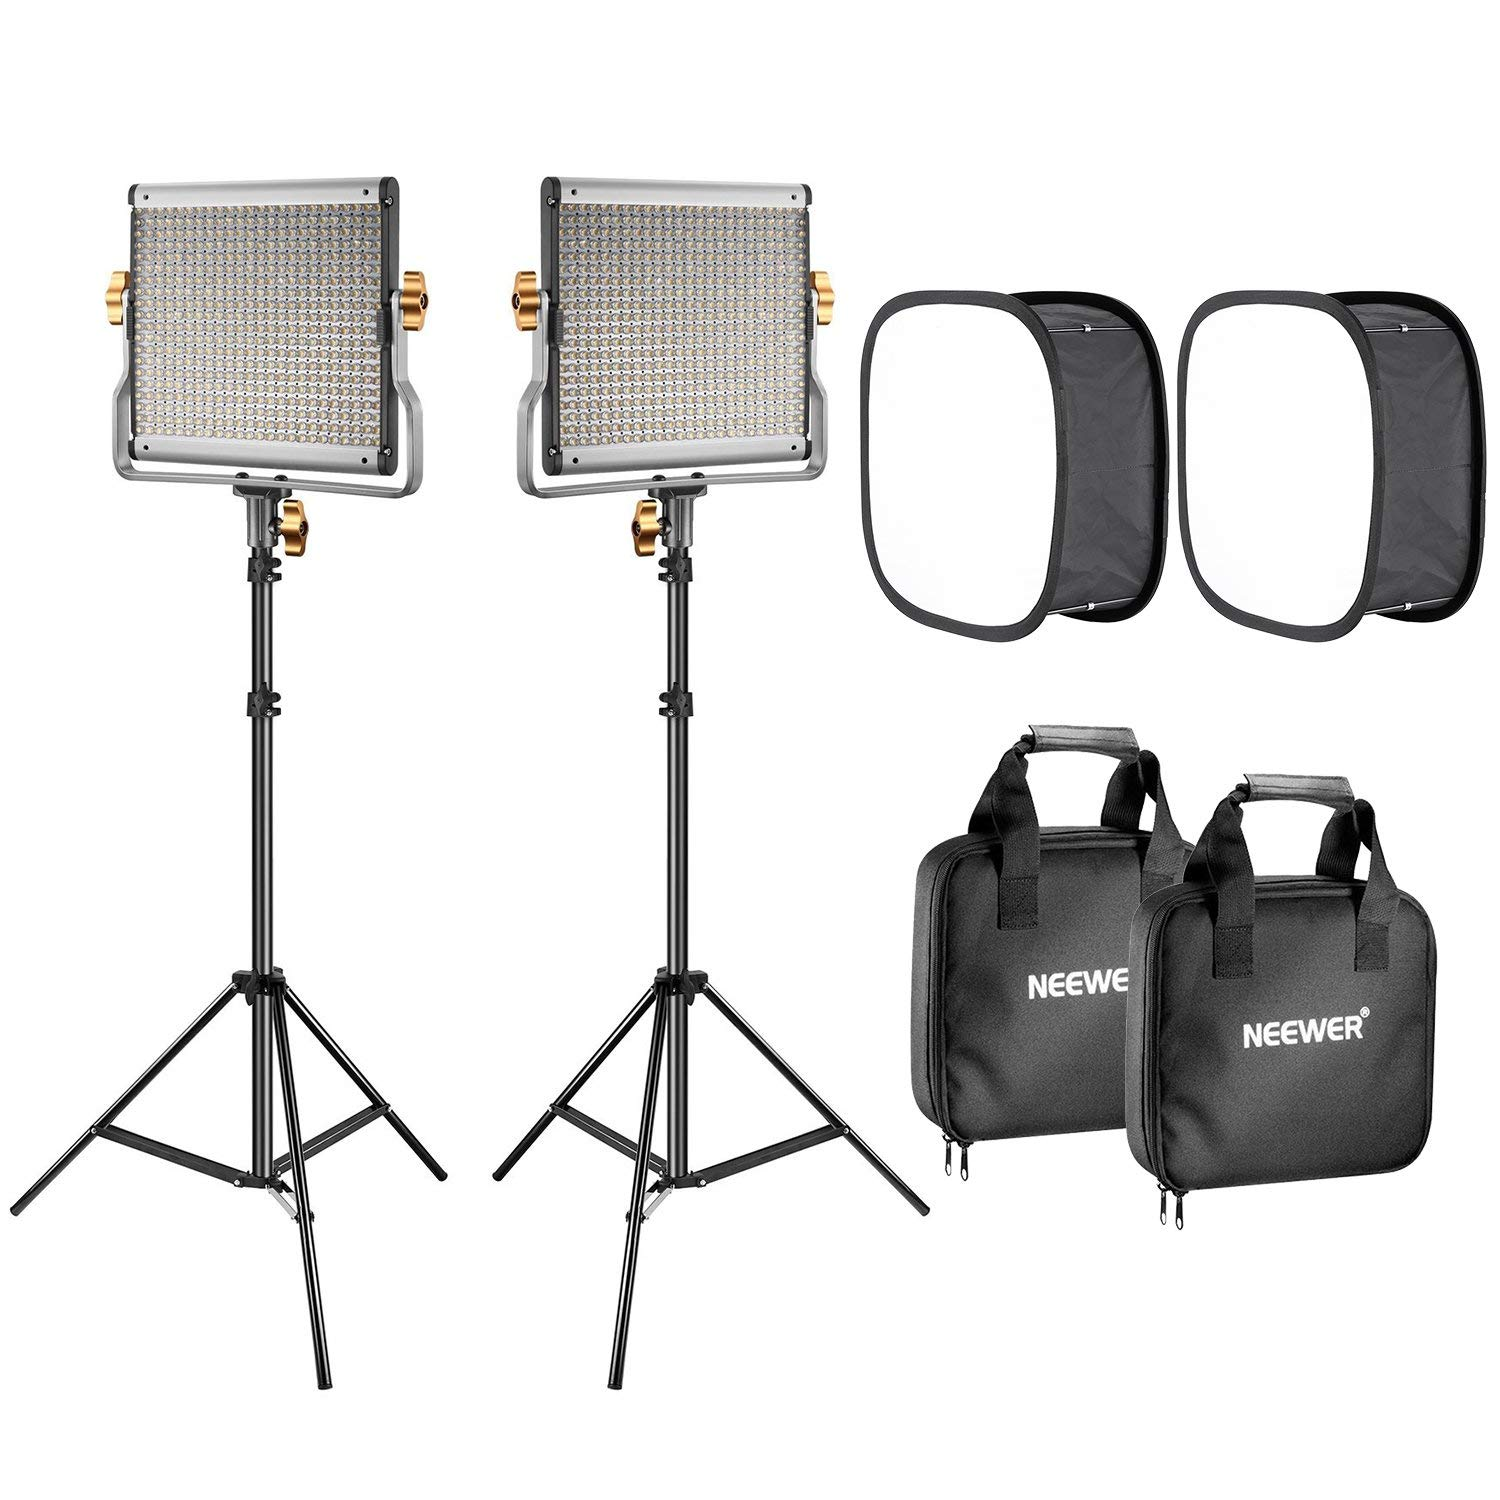 Neewer 2-Pack 480 LED Video Light Lighting Kit: Dimmable Bi-color LED Panel(3200-5600K,CRI 96+), 75-inch Light Stand and Softbox Diffuser for Photo Studio Product Portrait,YouTube Video Photography